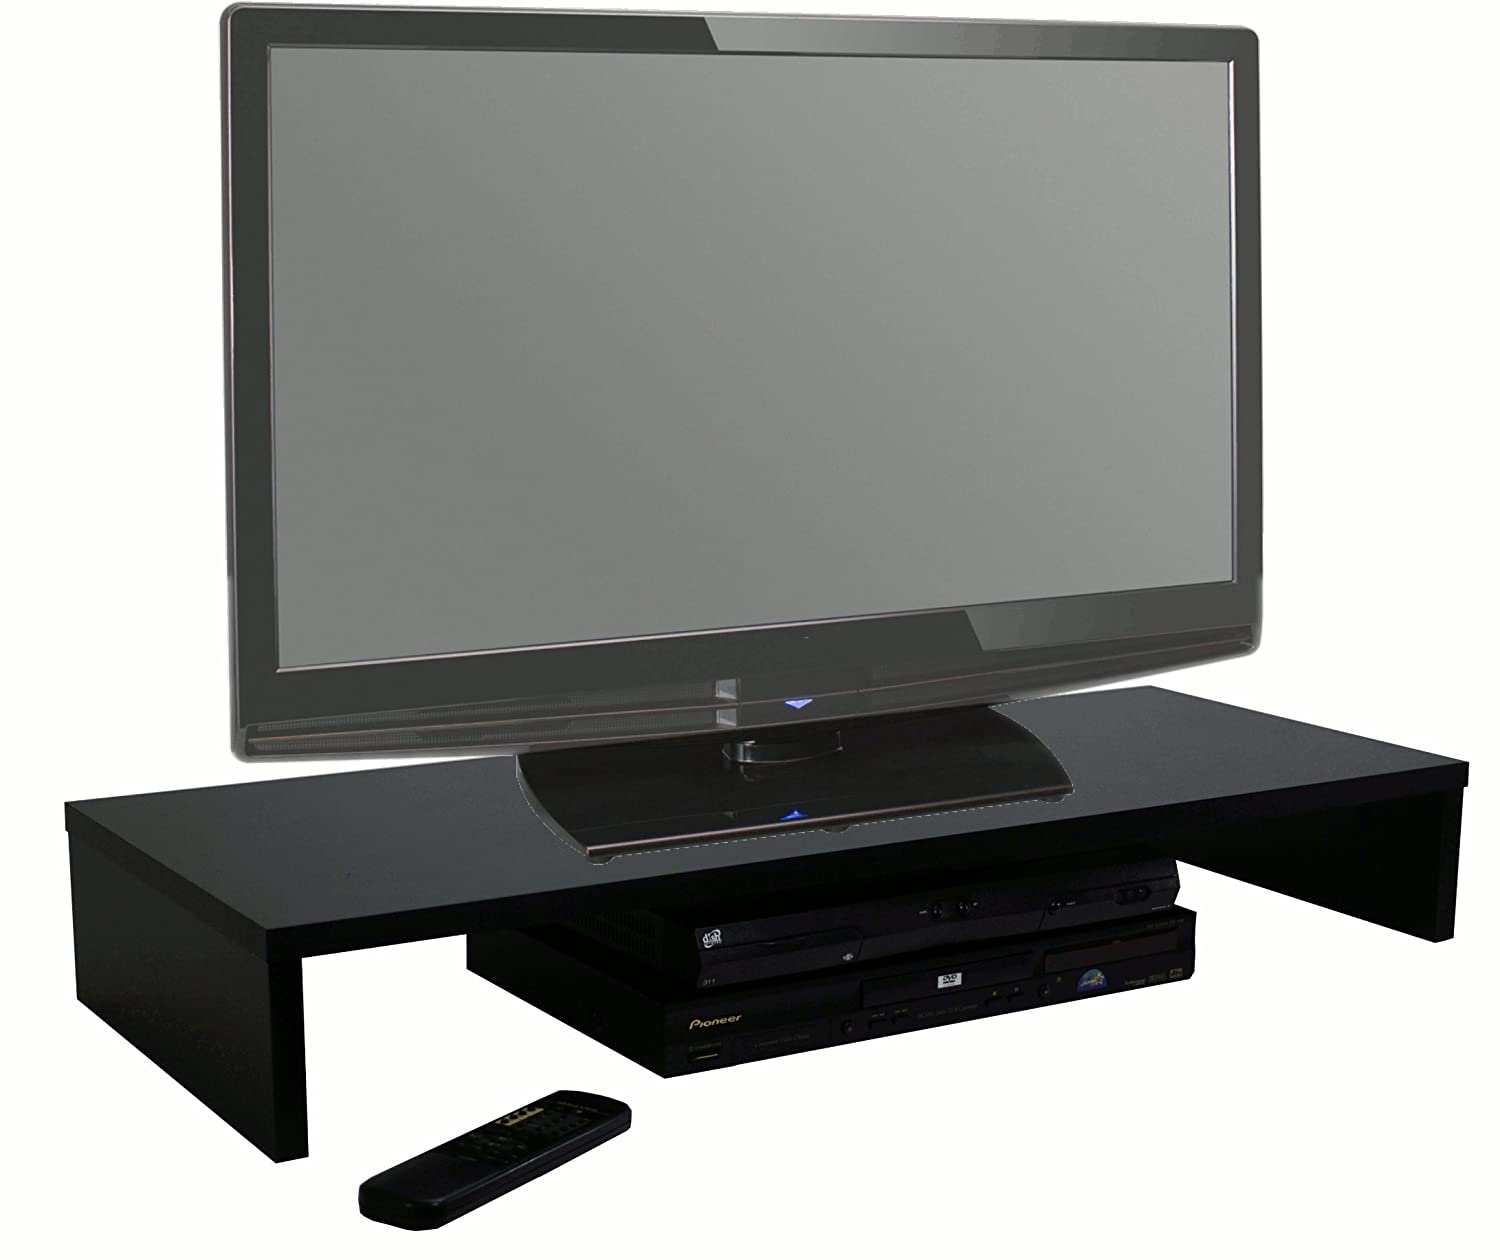 Table De Television Affordable Planches Parpaings Caisses De Vin  # Table En Bois Pour Television